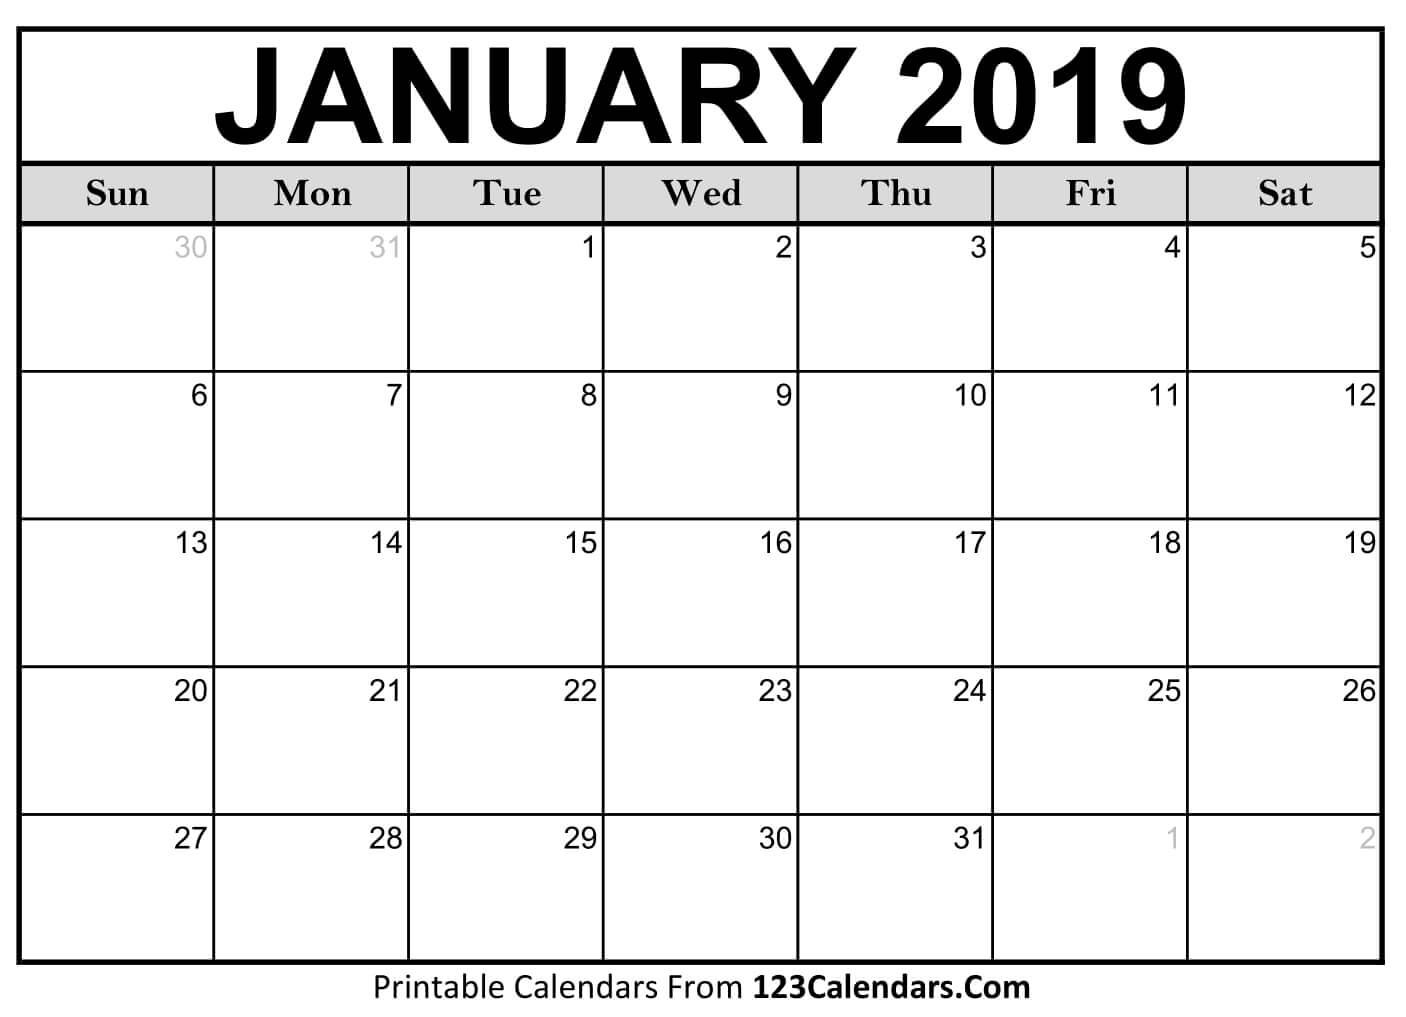 Printable January 2019 Calendar Templates - 123Calendars Calendar 2019 January To March